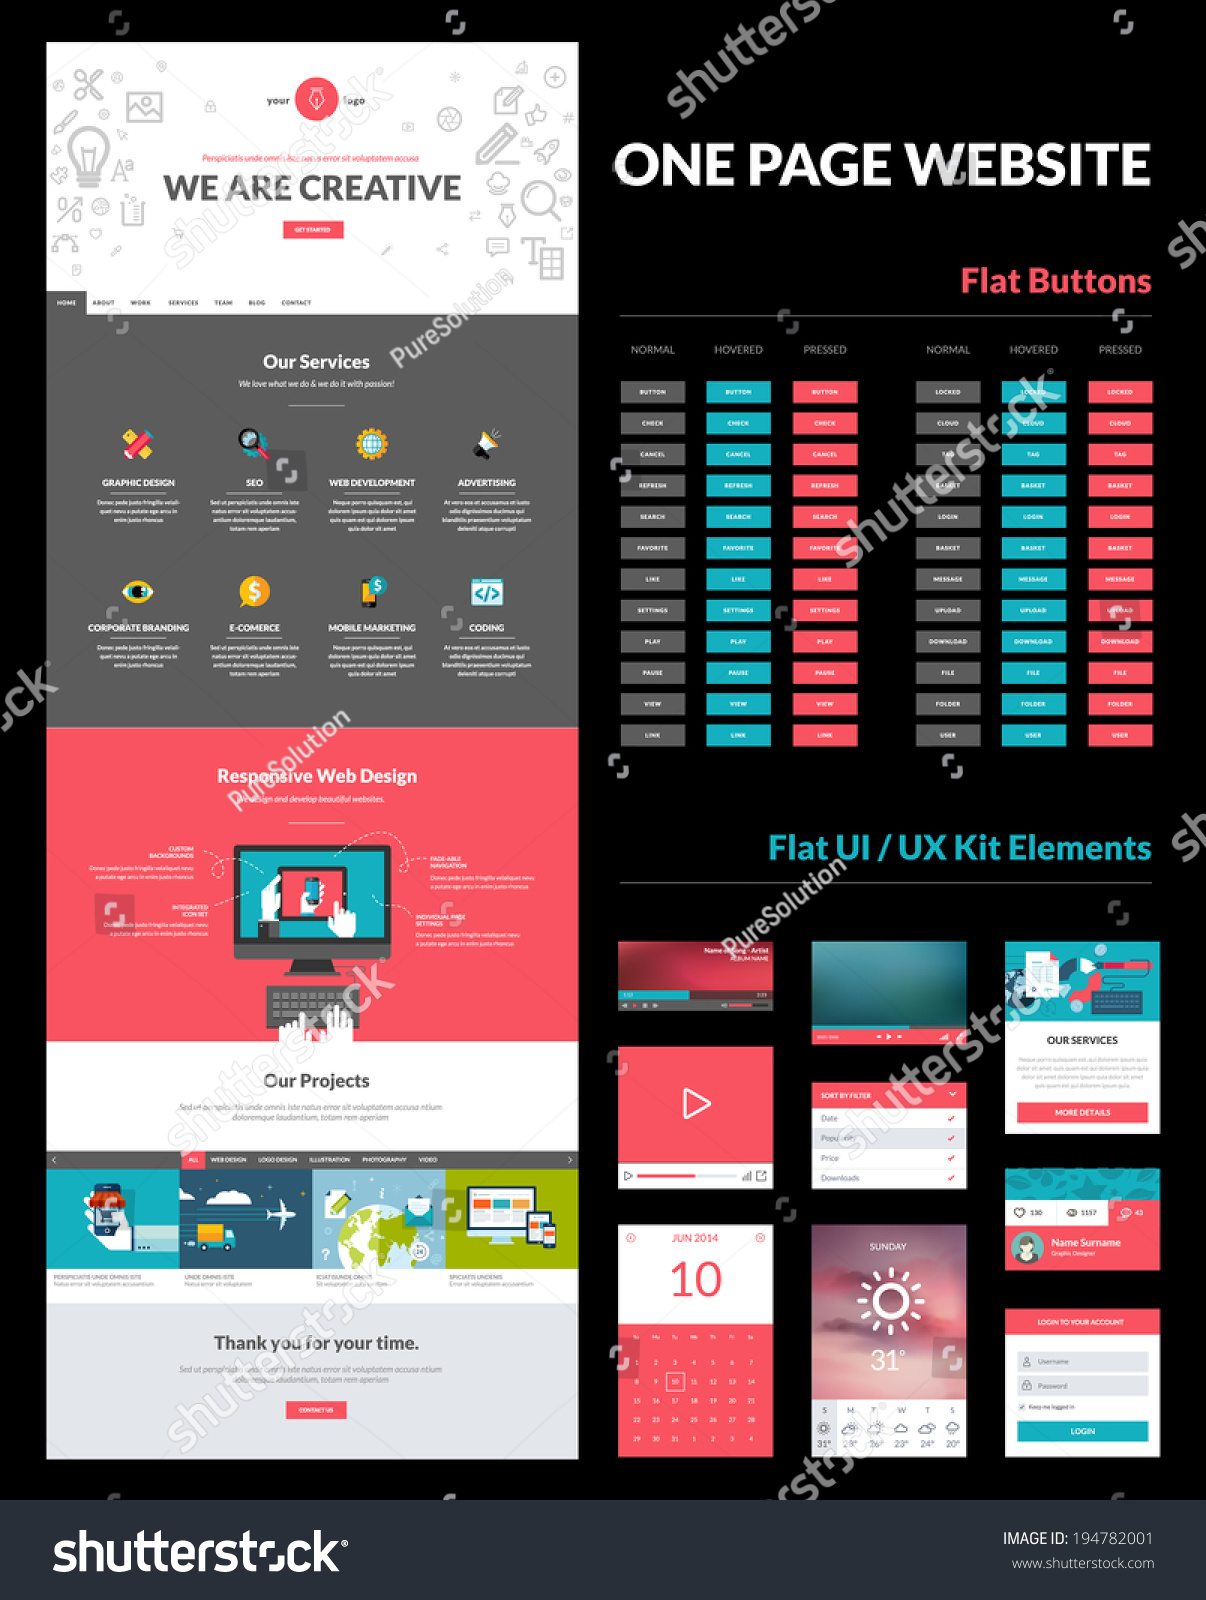 Cute 2 Page Resume Template Word Small 2014 Sample Resume Templates Solid 2015 Calendar Template 2015 Printable Calendar Template Young 3d Character Modeler Resume Dark3d Powerpoint Presentation Templates One Page Website Design Template All Stock Vector 194782001 ..